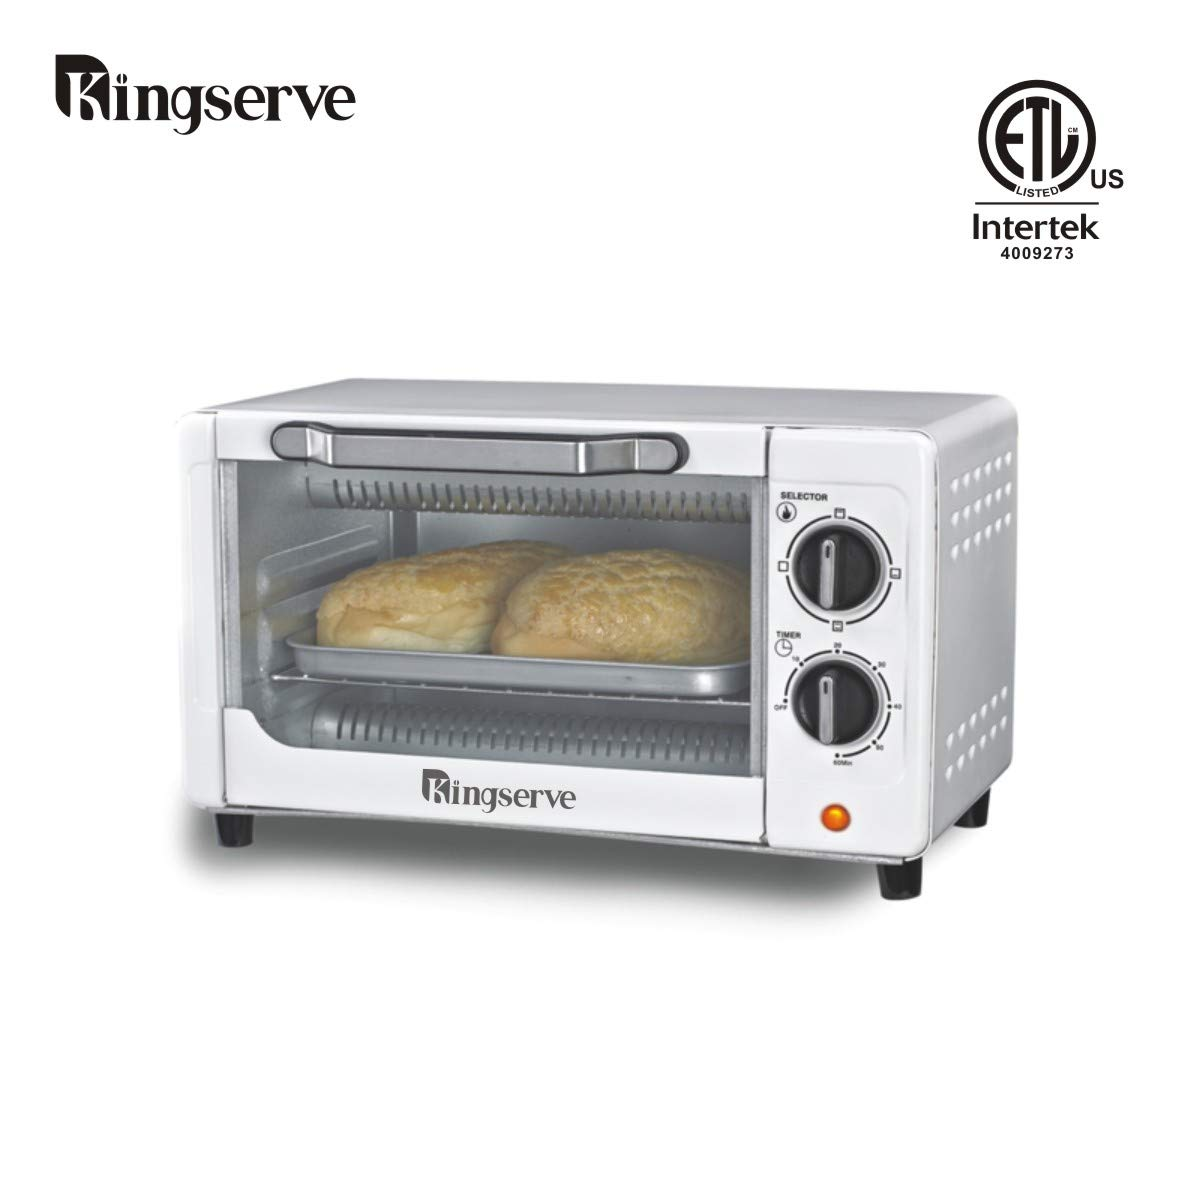 KingServe Convection Bake Oven,Small Toaster Ovens Countertop,Small Kitchen Appliances Compact Toaster Oven Counter Tabletop High Quality Oven,Stainless Steel Exterior Oven(Silver)